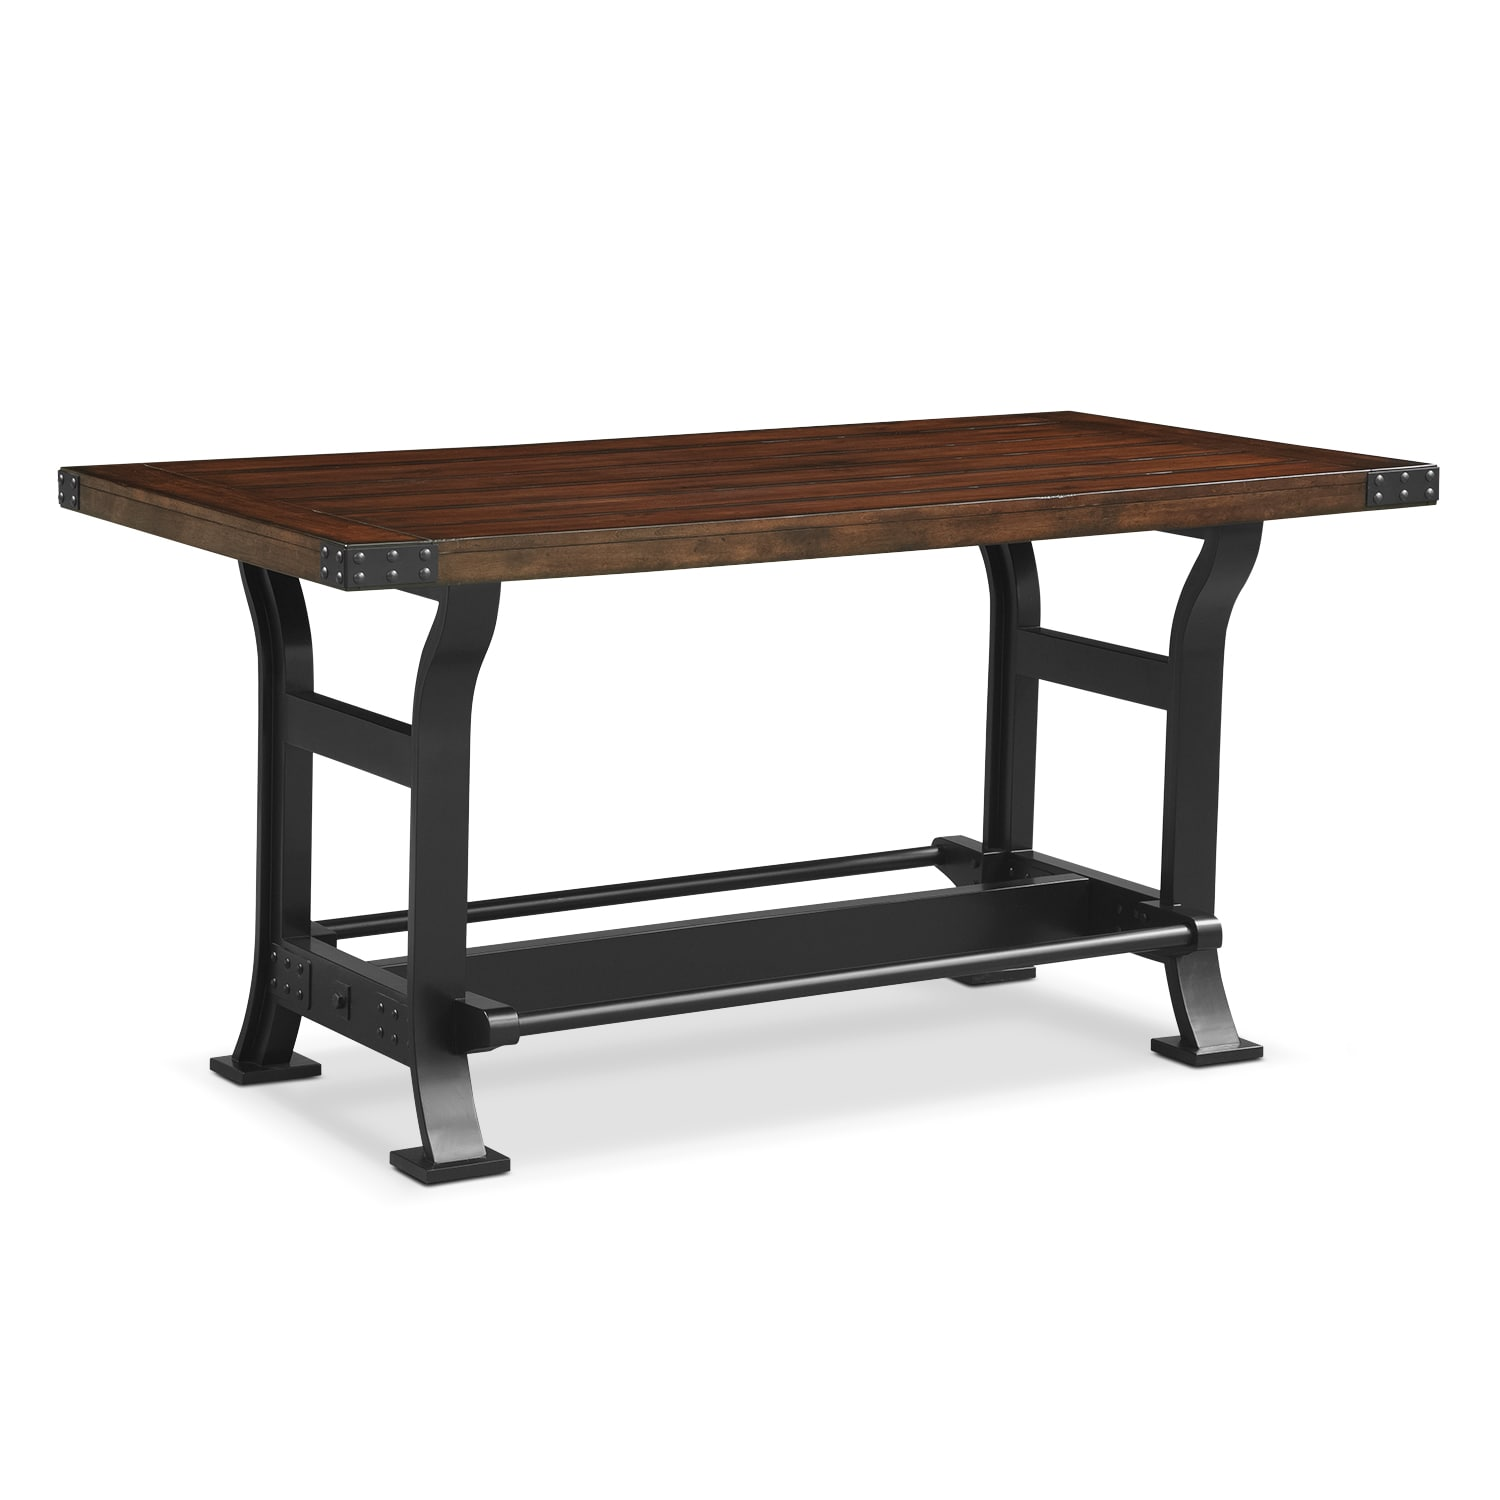 Newcastle counter height dining table mahogany for Best dining room table height